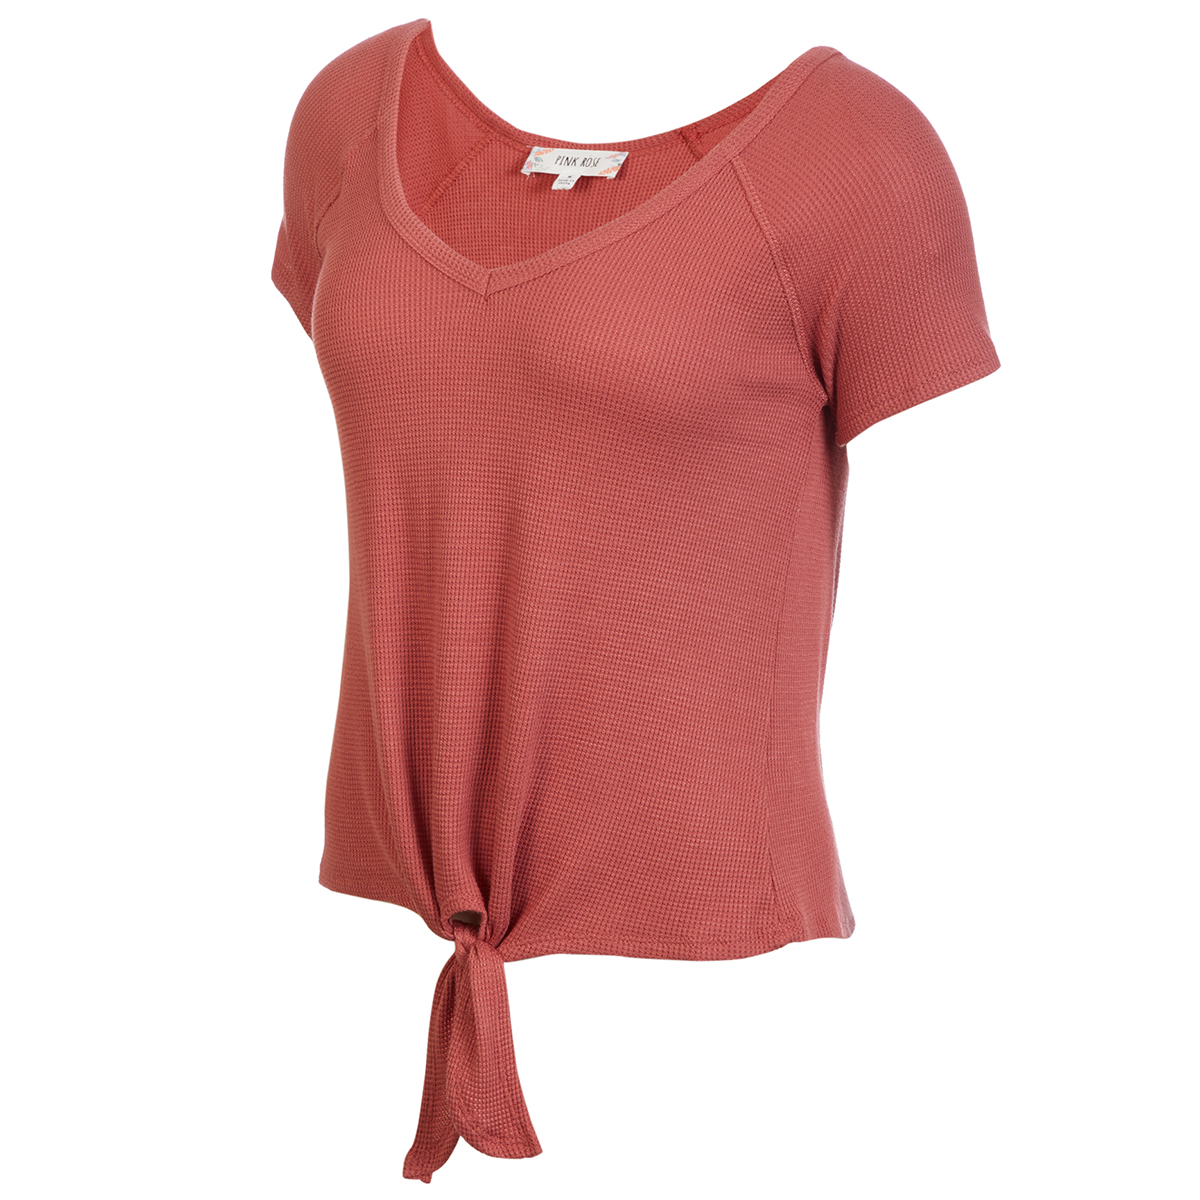 Pink Rose Juniors' V-Neck Tie Front Tee - Red, S